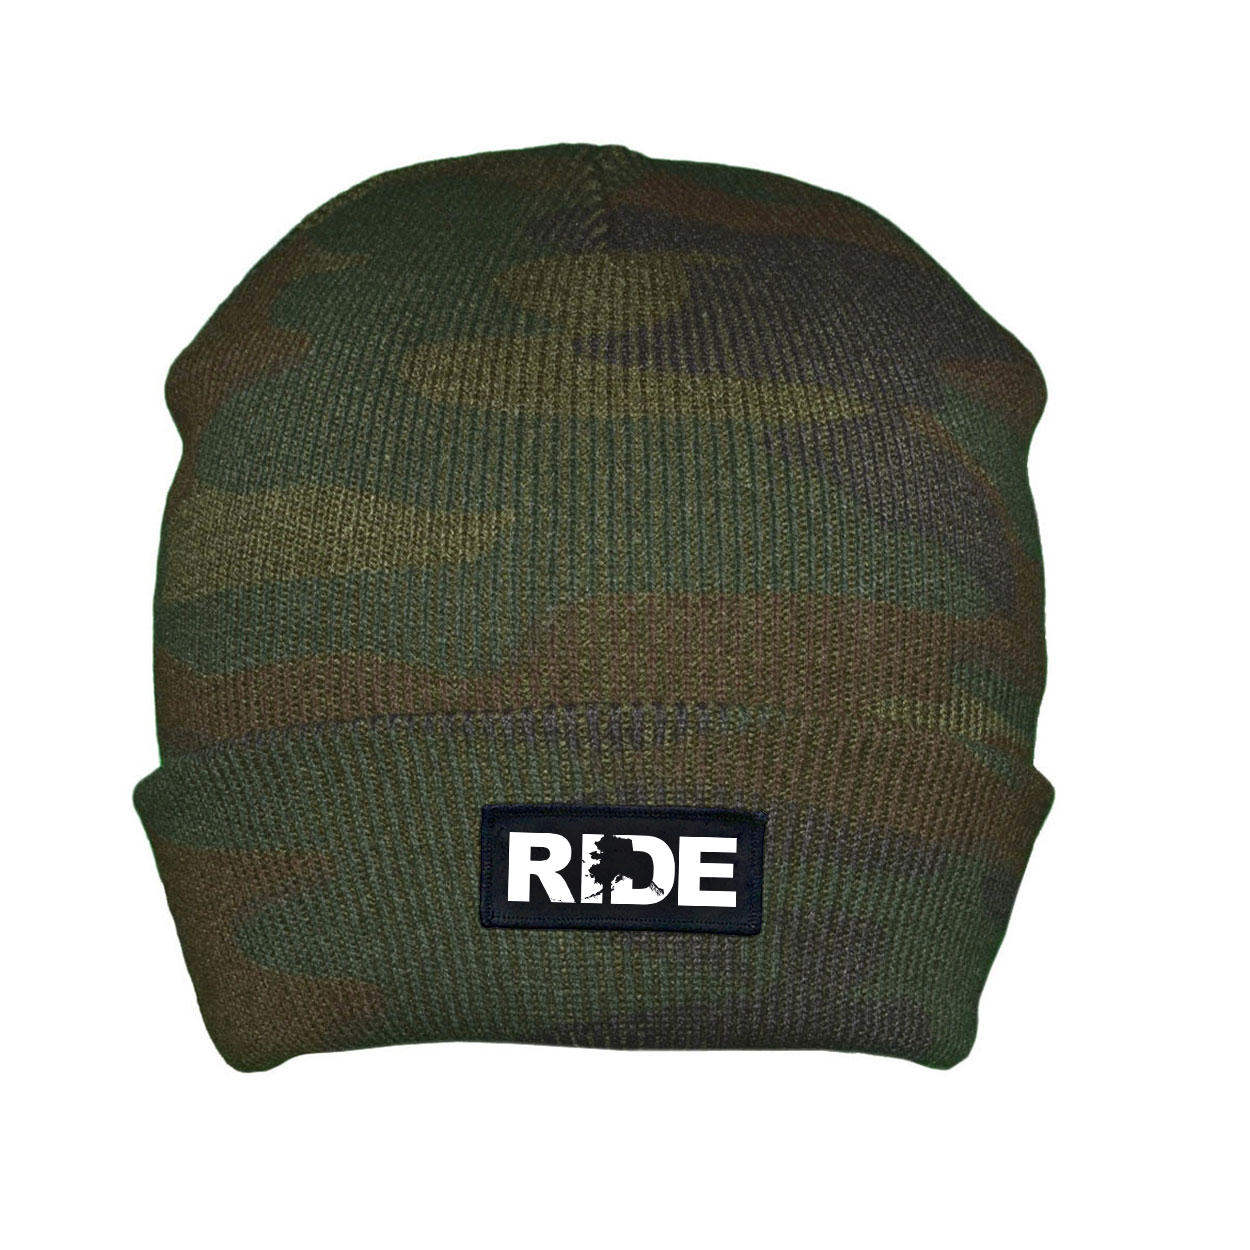 Ride Alaska Night Out Woven Patch Roll Up Skully Beanie Camo (White Logo)